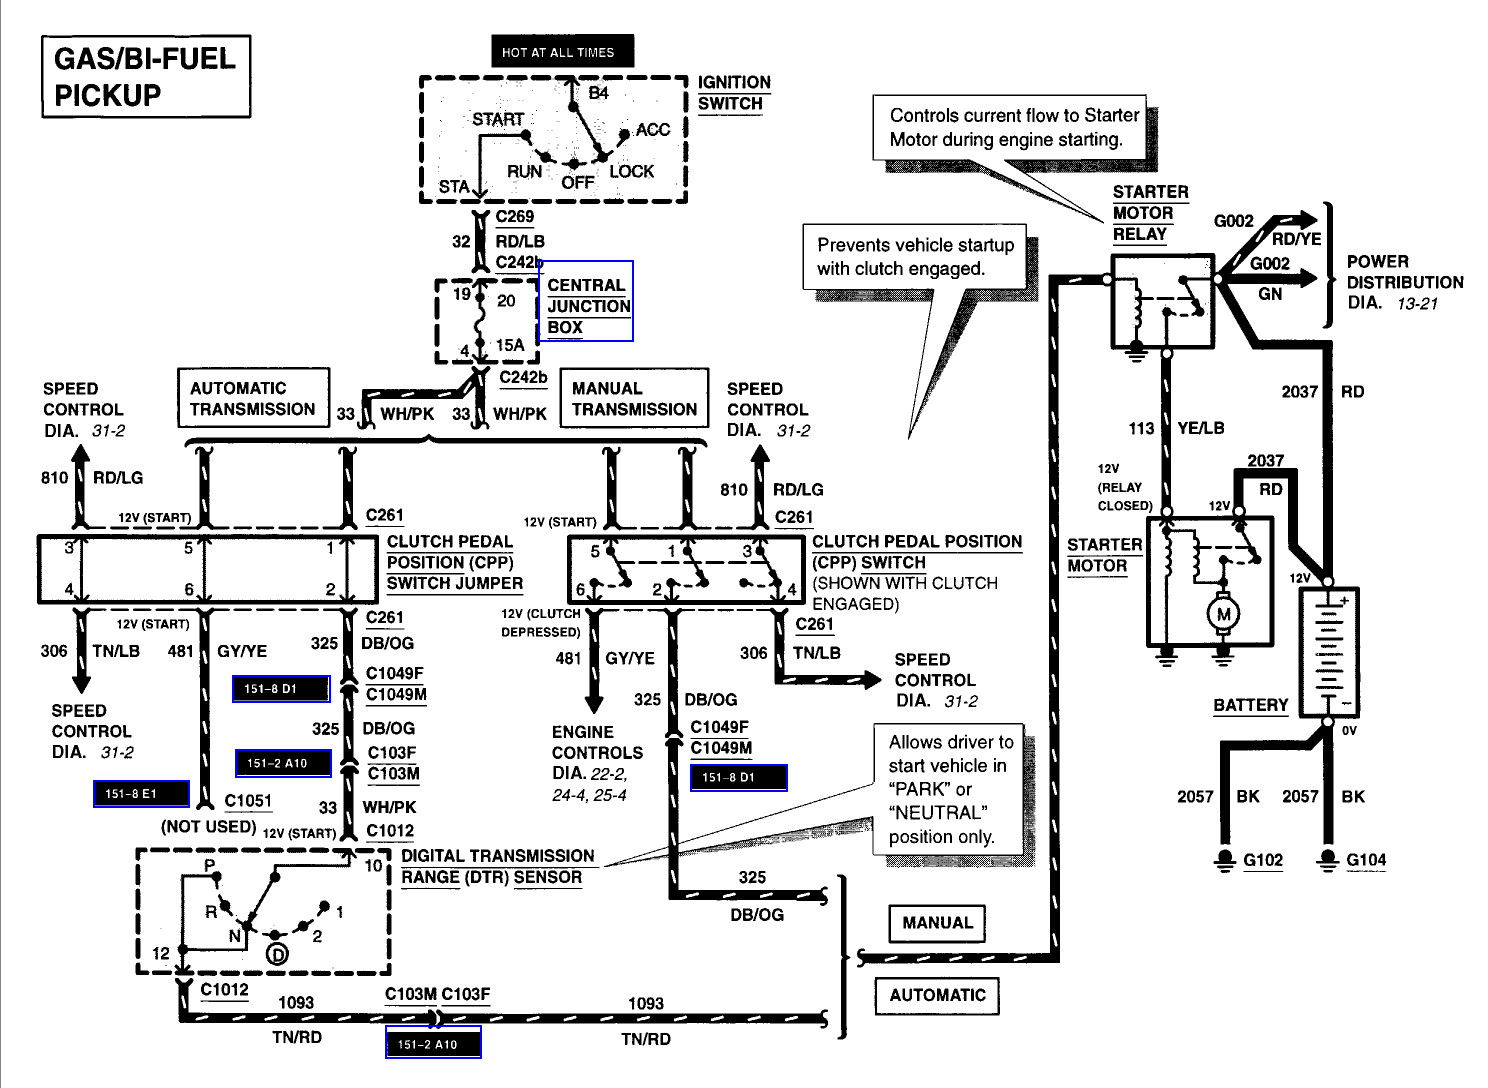 2002 ford excursion wiring diagram Collection-Ford Excursion Wiring S Schematics Prepossessing 15-i